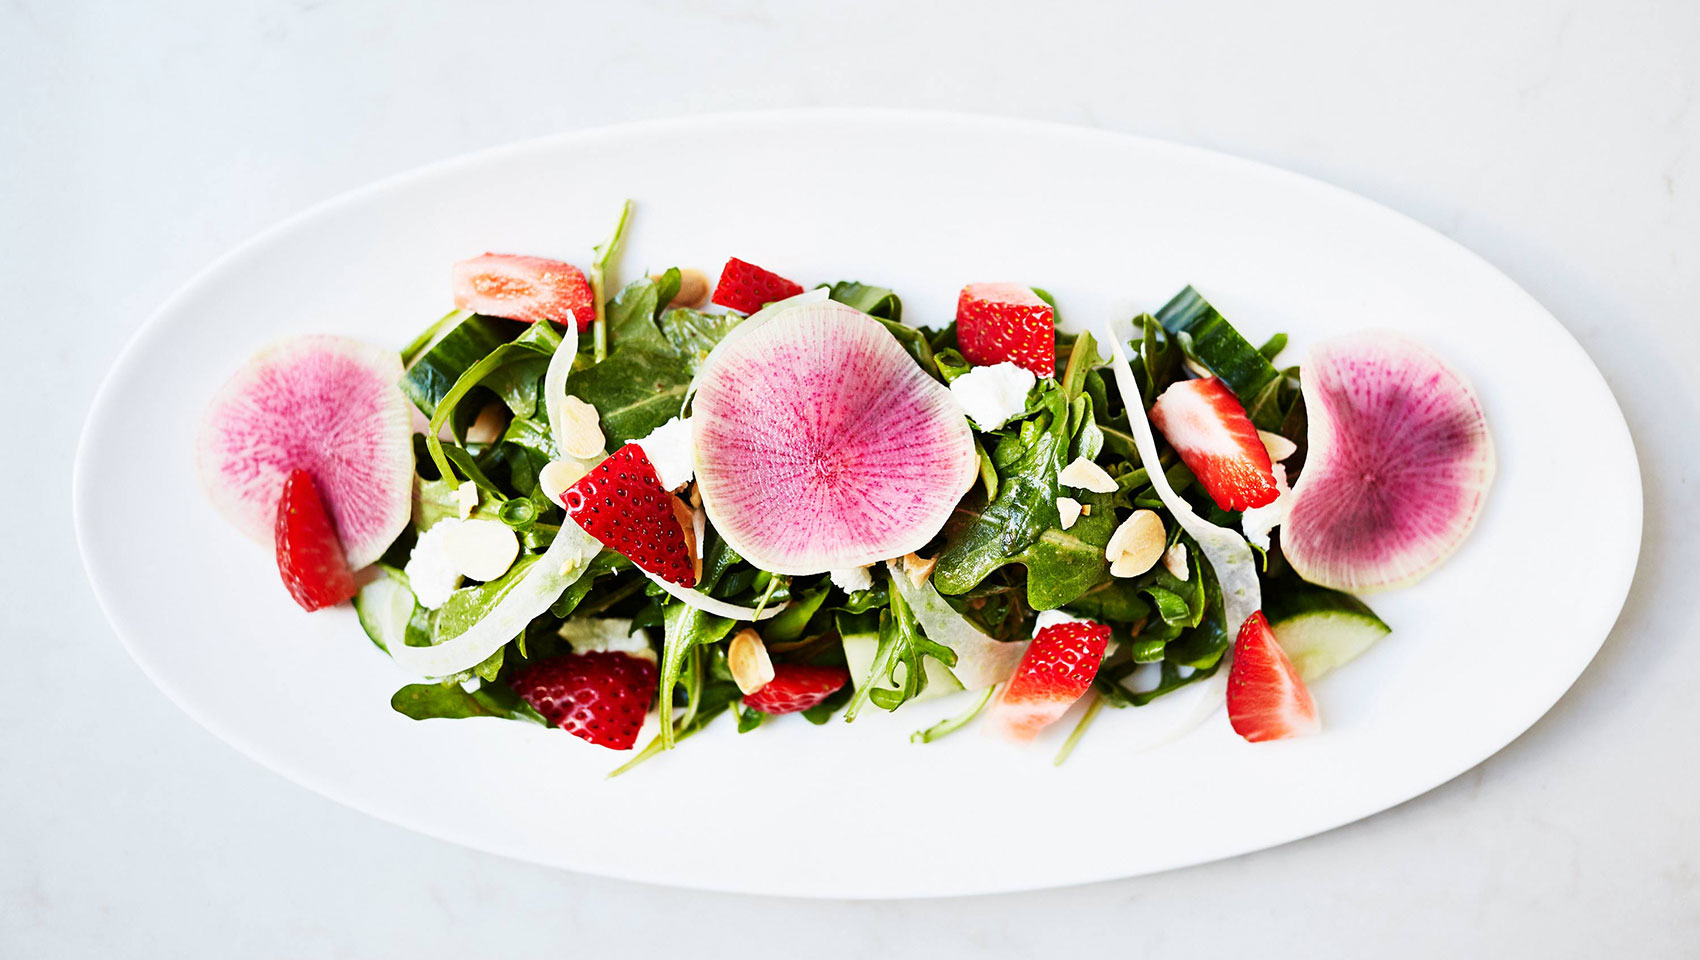 Double Take's strawberry salad